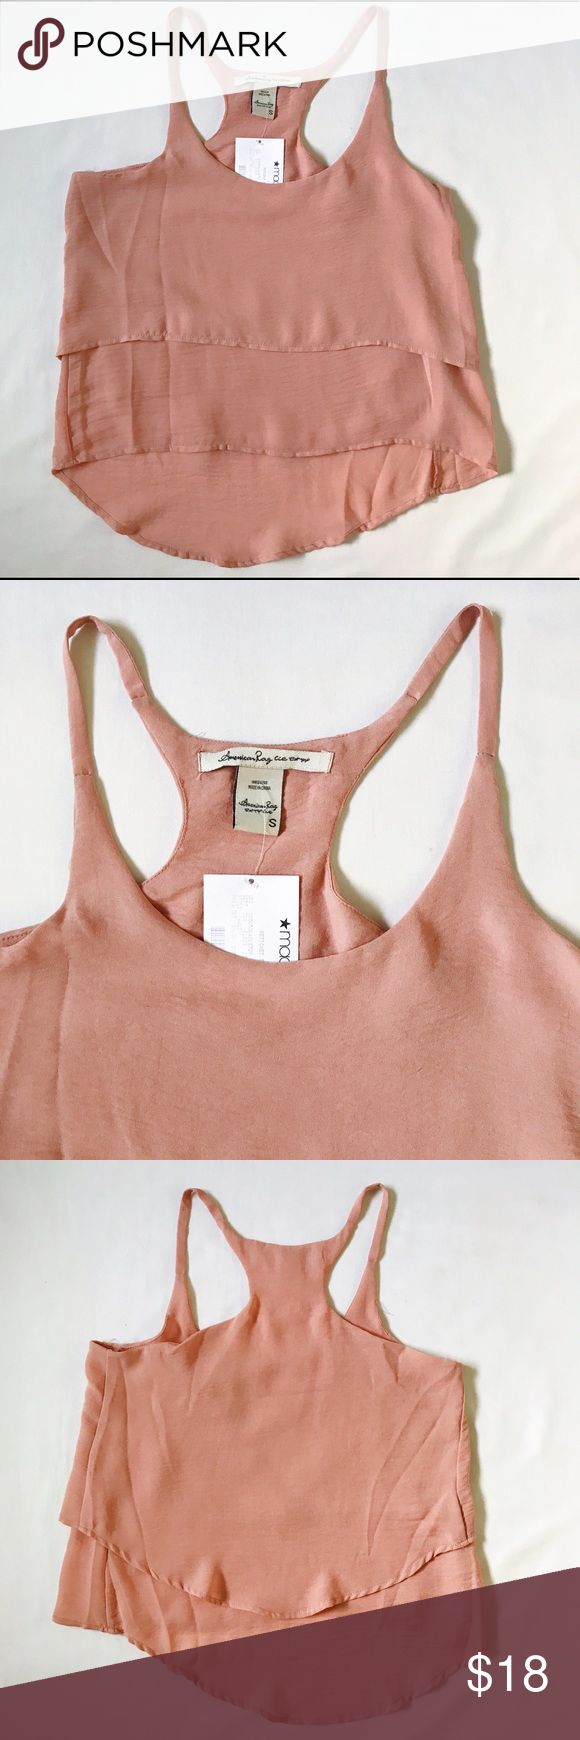 NWT American Rag Flowy Asymmetric Tank New with tags, never worn American Rag flowy top in a peachy rosey salmon color. American Rag Tops Blouses